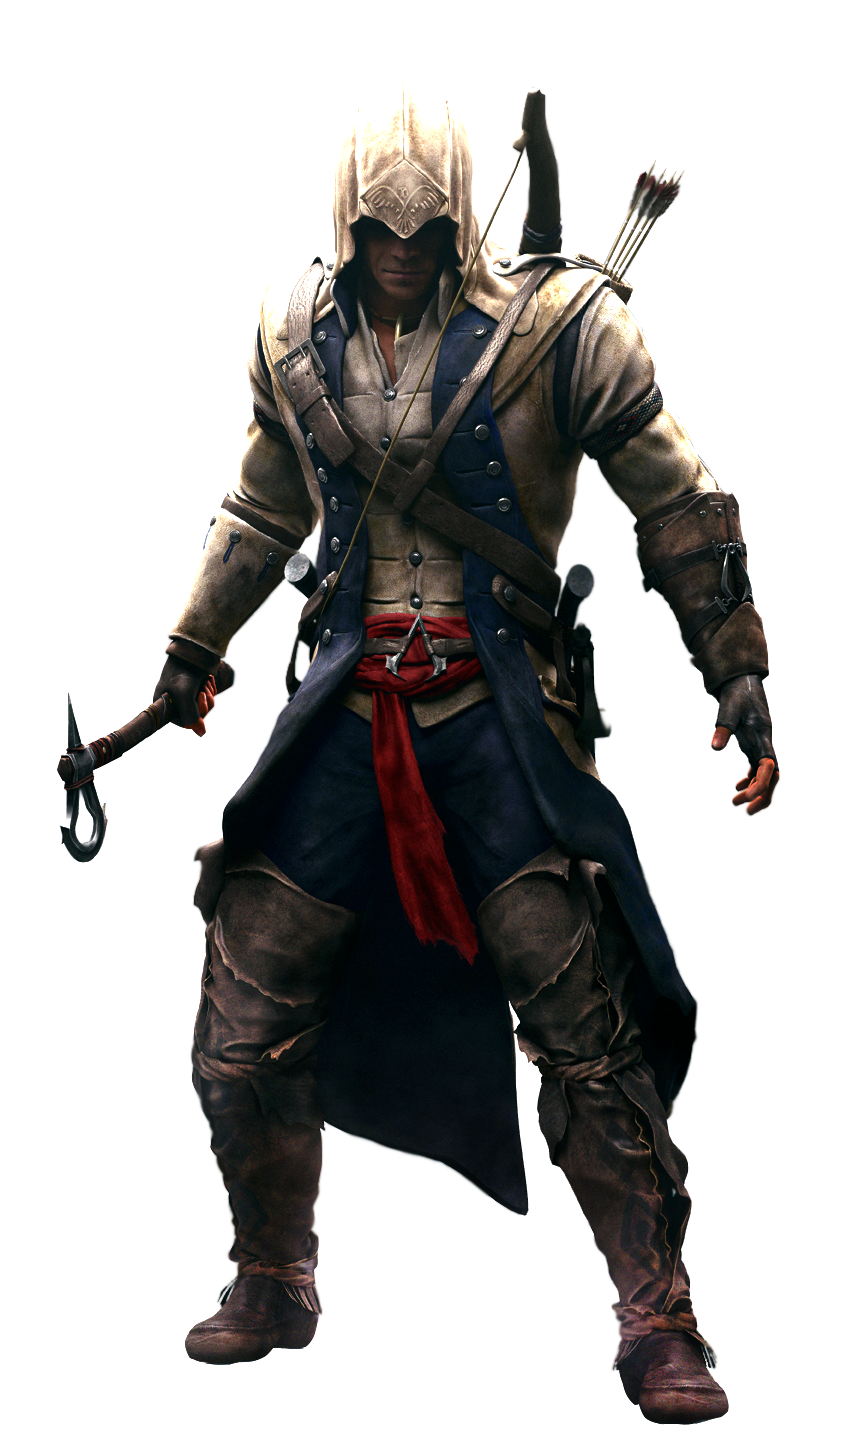 Aci Connor.png - Assassins Creed, Transparent background PNG HD thumbnail